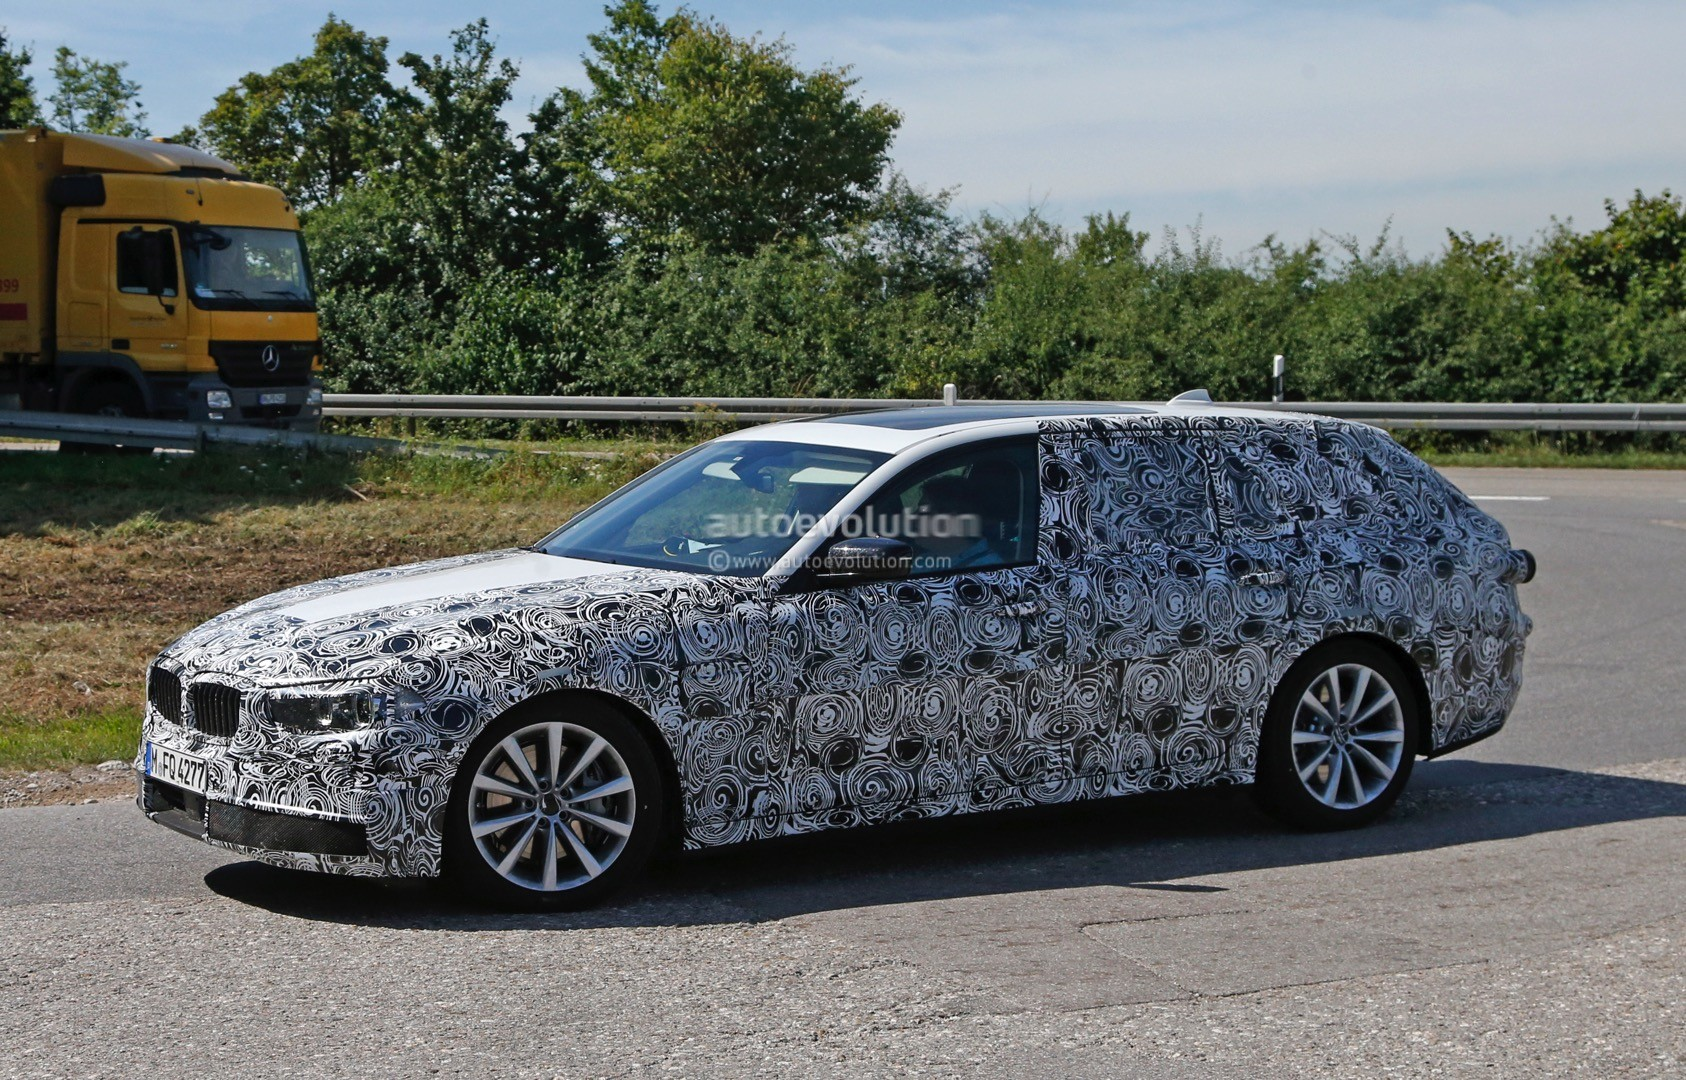 2017 BMW G31 5 Series Touring Spied, Prototypes Show New Front End ...